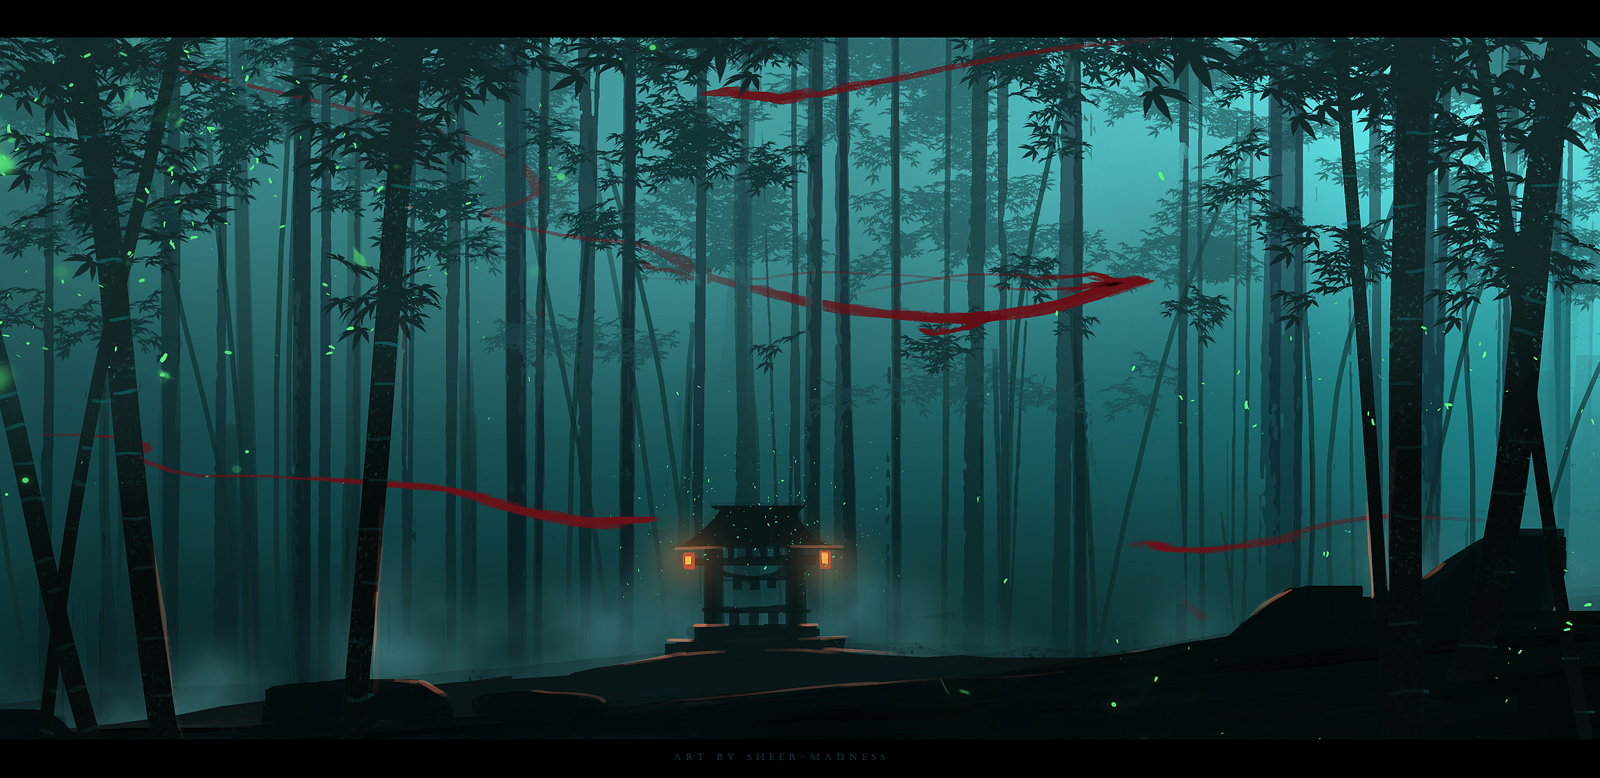 bamboo_forest_spirits_by_sheer_madness-d729ud9.jpg